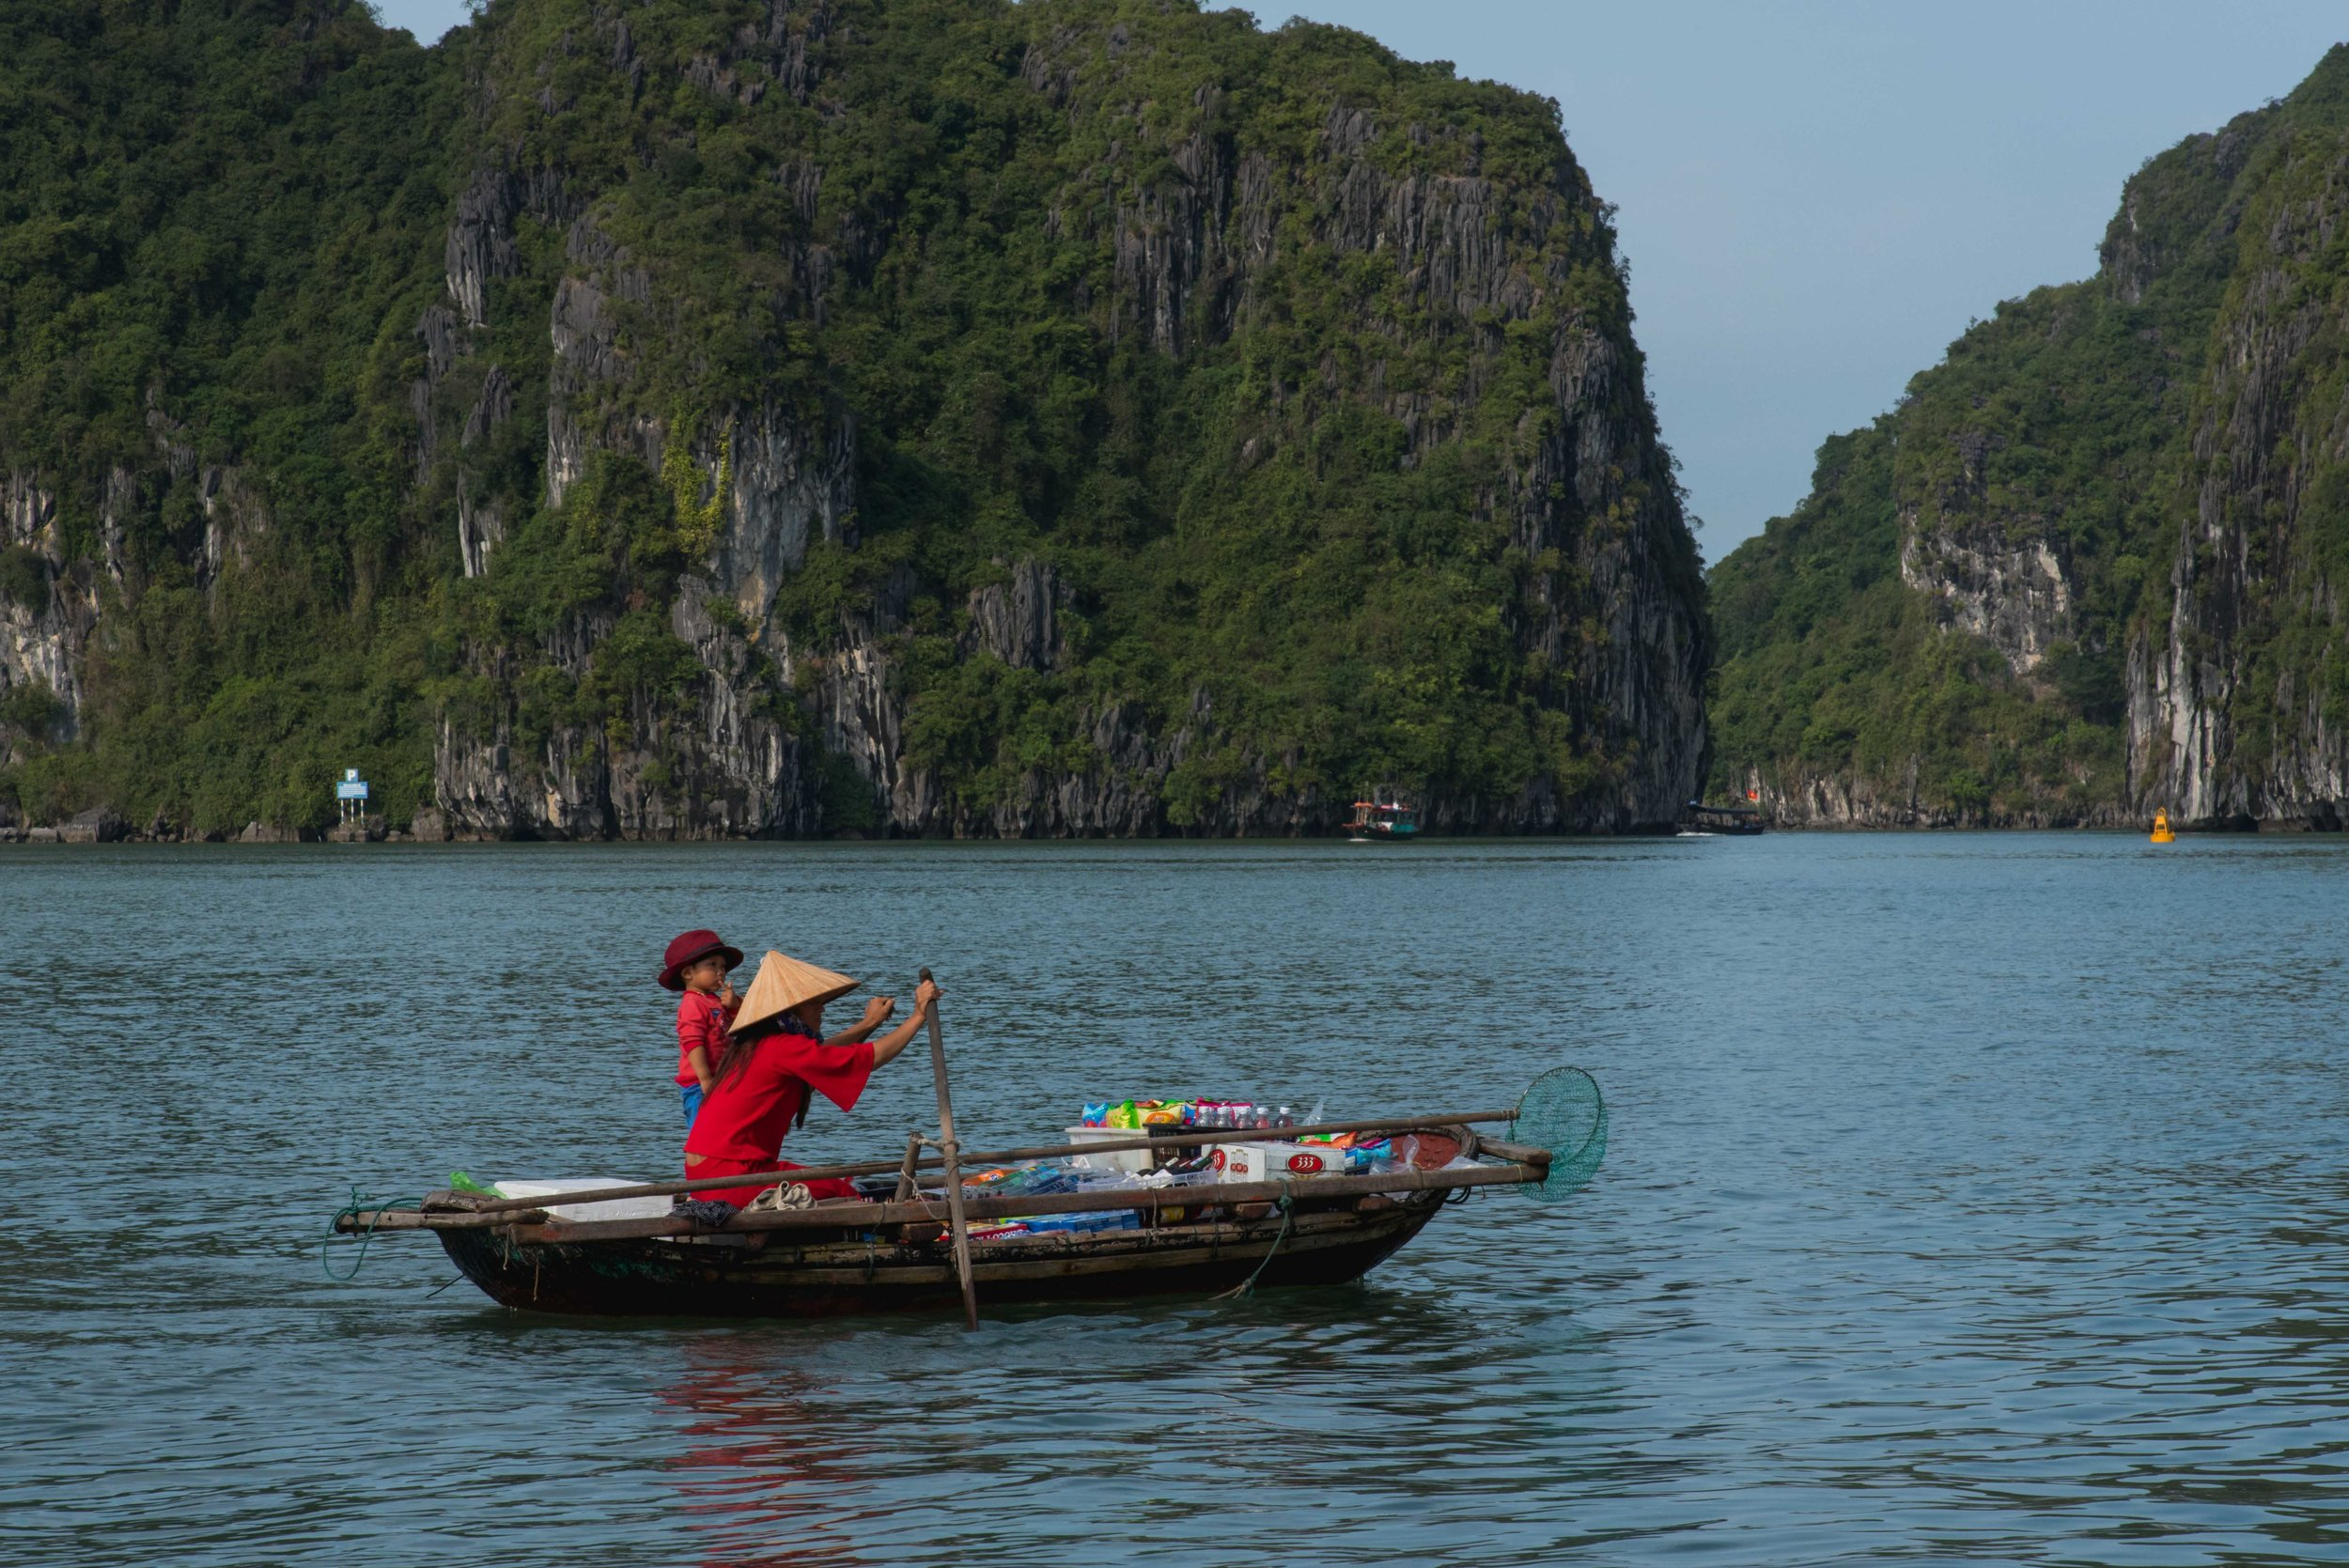 Mothers rowed boats around the islands to the cruise ships selling snacks and drinks, a mobile snack bar.